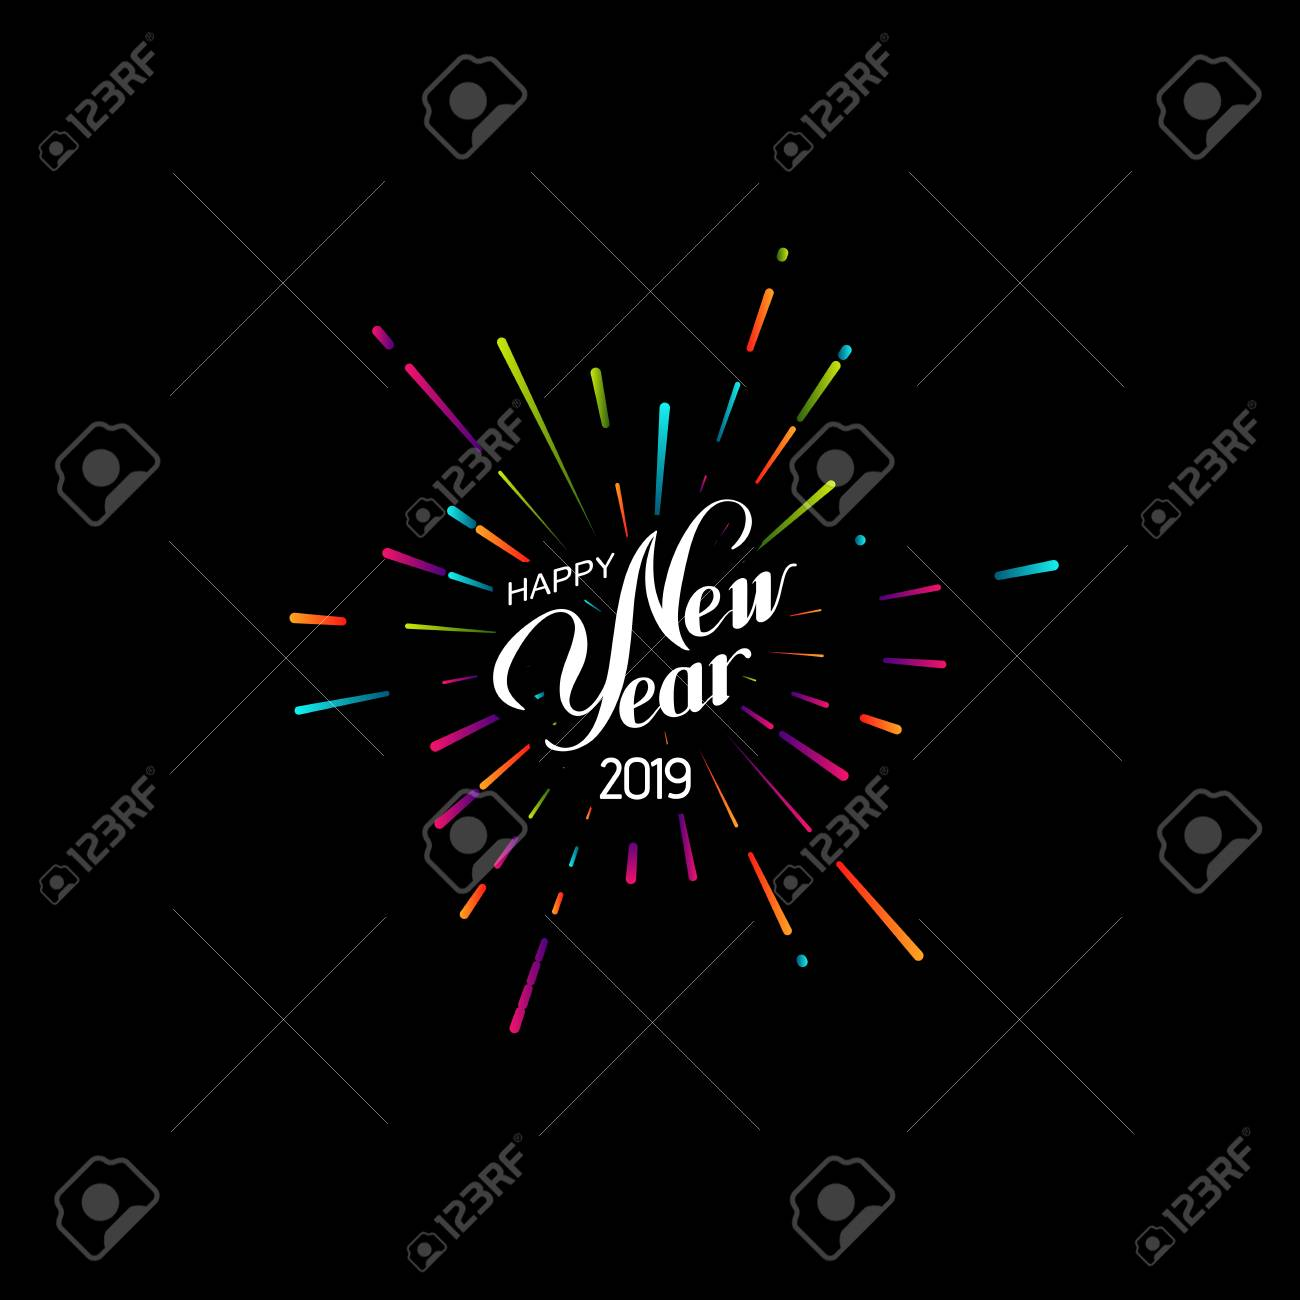 Happy 2019 New Year. Holiday Vector Illustration With Lettering Composition And Bursting Fireworks shape. - 111240509